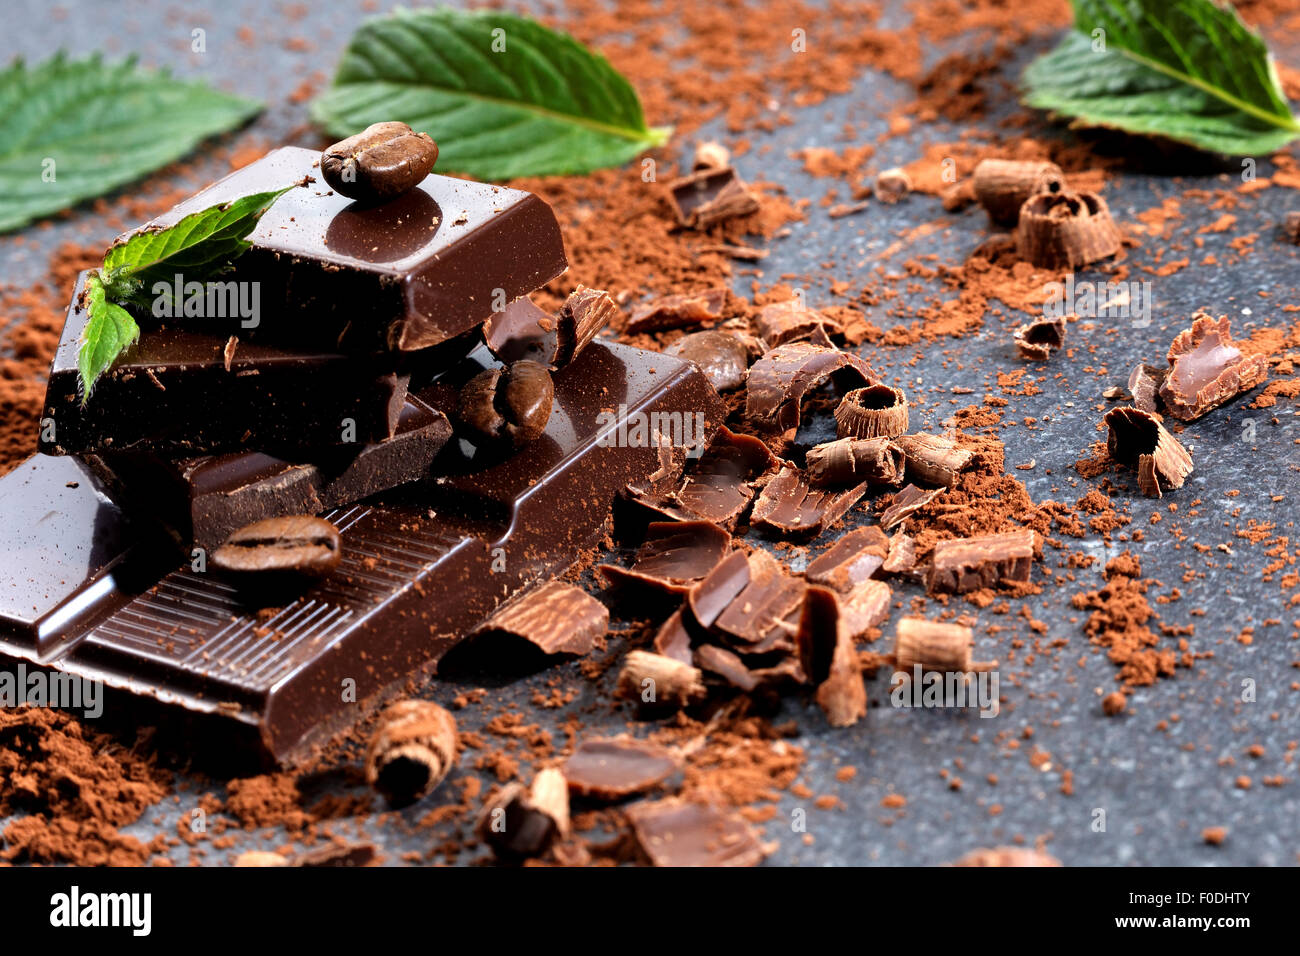 Dark chocolate and coffee bean on a stone table - Stock Image